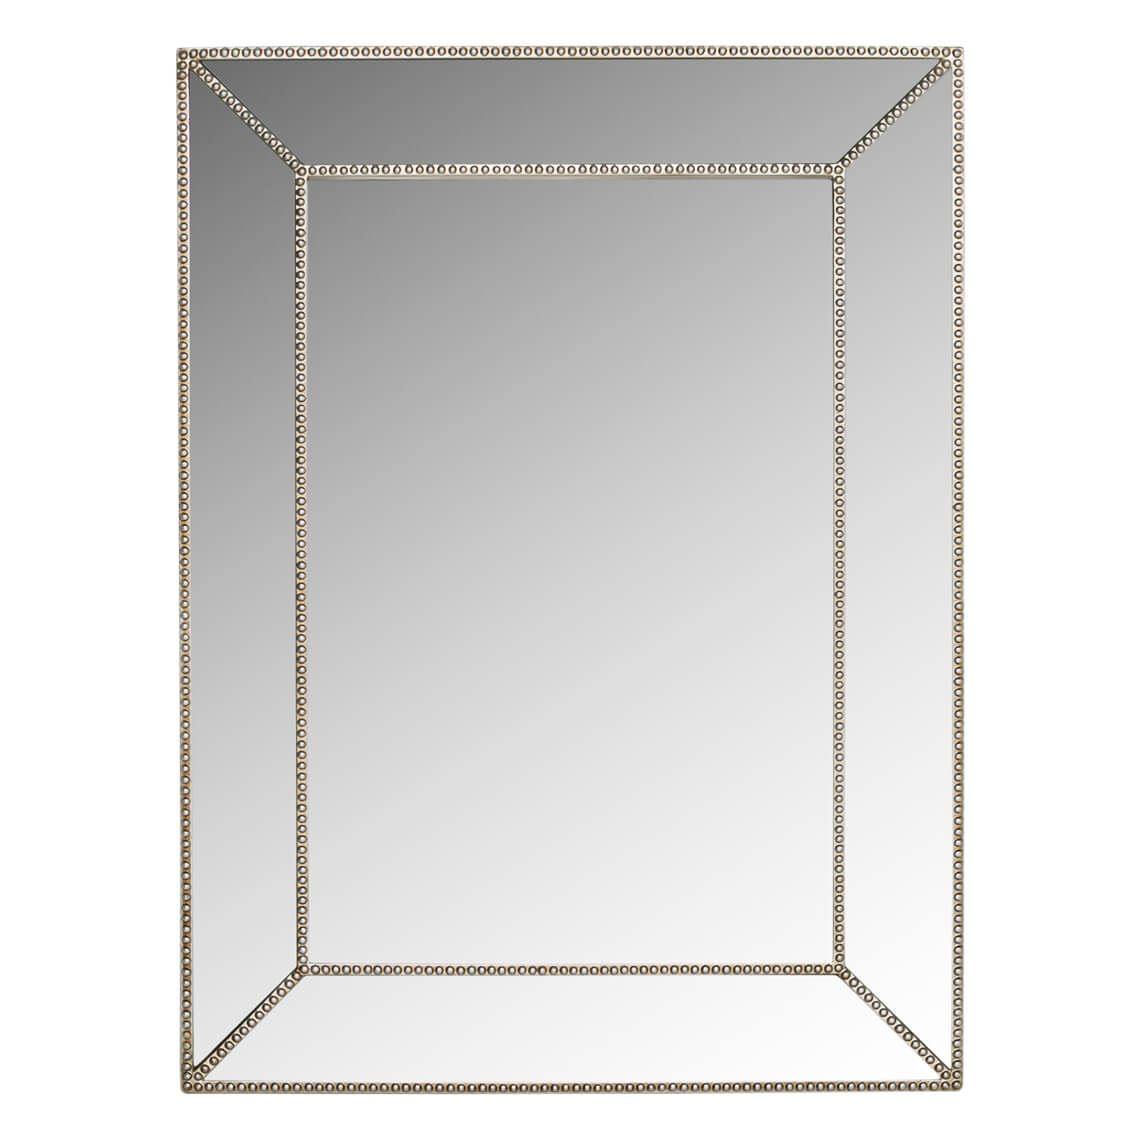 Clara Mirror Size W 86cm x D 5cm x H 117cm Mangowood/Wood/Mirrored Glass Freedom by Freedom, a Mirrors for sale on Style Sourcebook